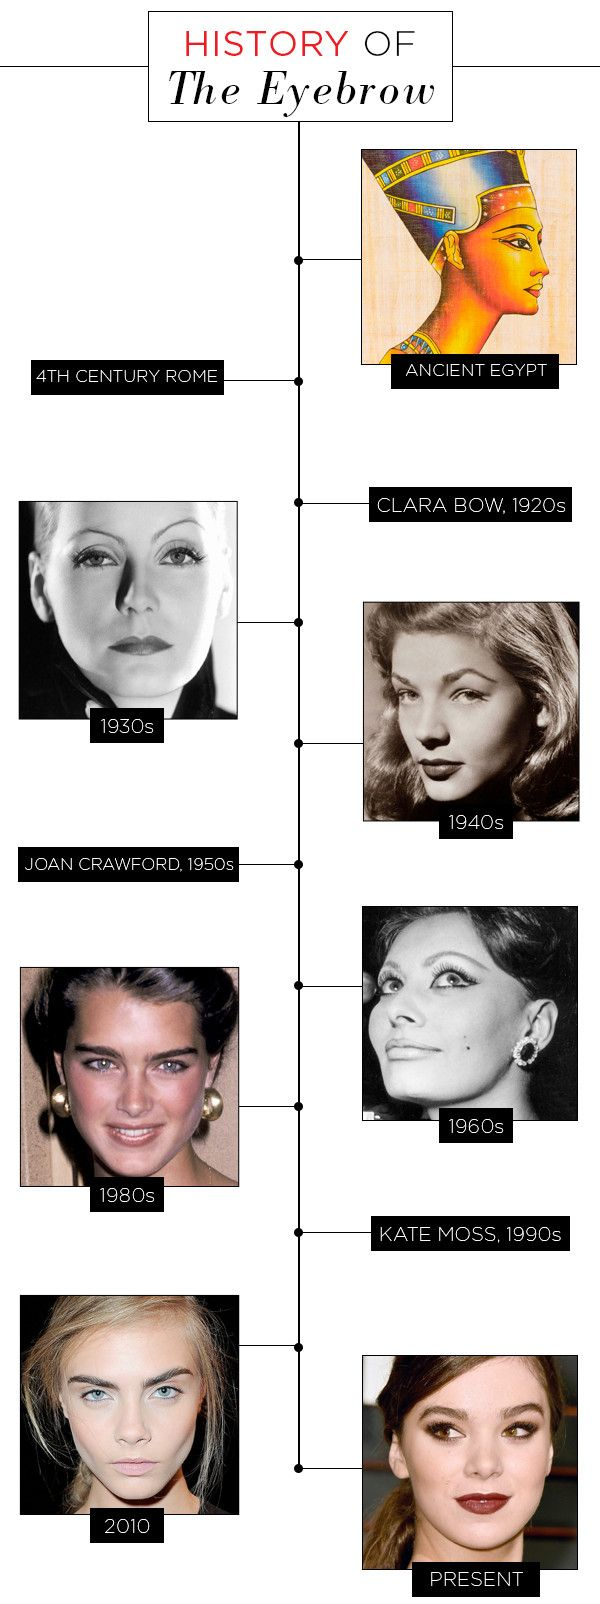 Our affinity for the eyebrow knows no bounds. The full history on beautiful brows.